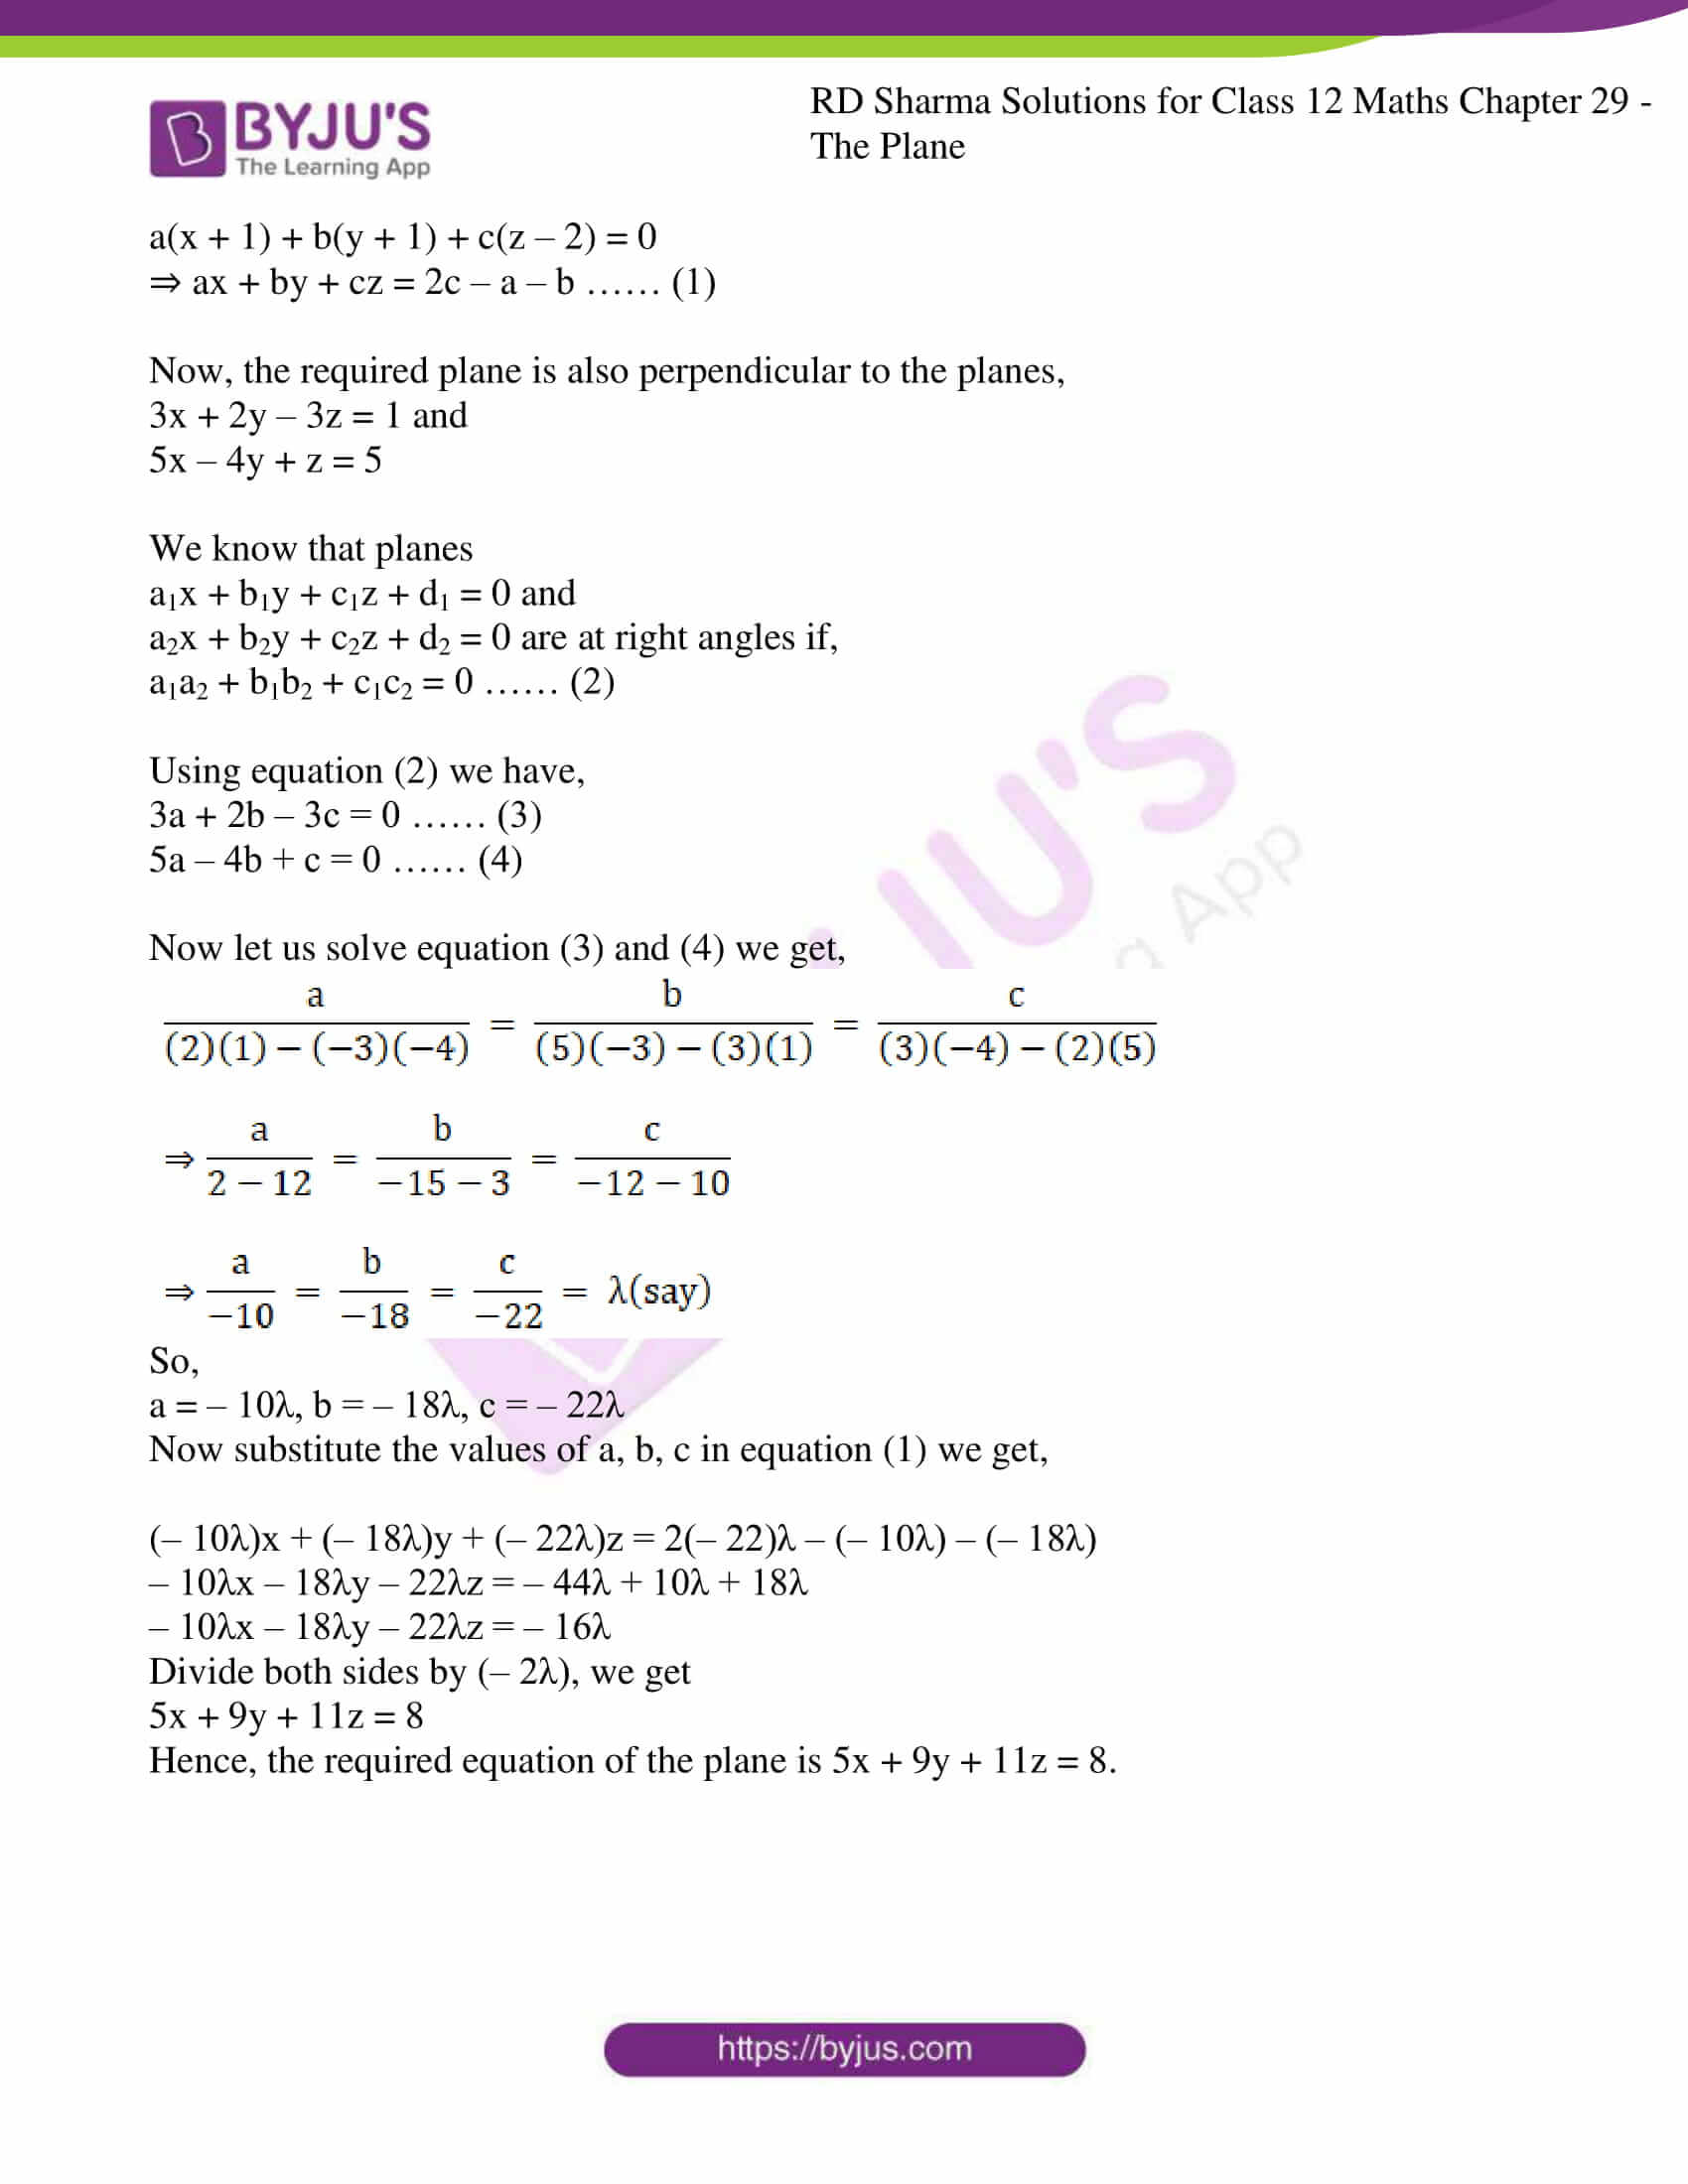 rd sharma solutions for class 12 maths chapter 29 ex 6 11